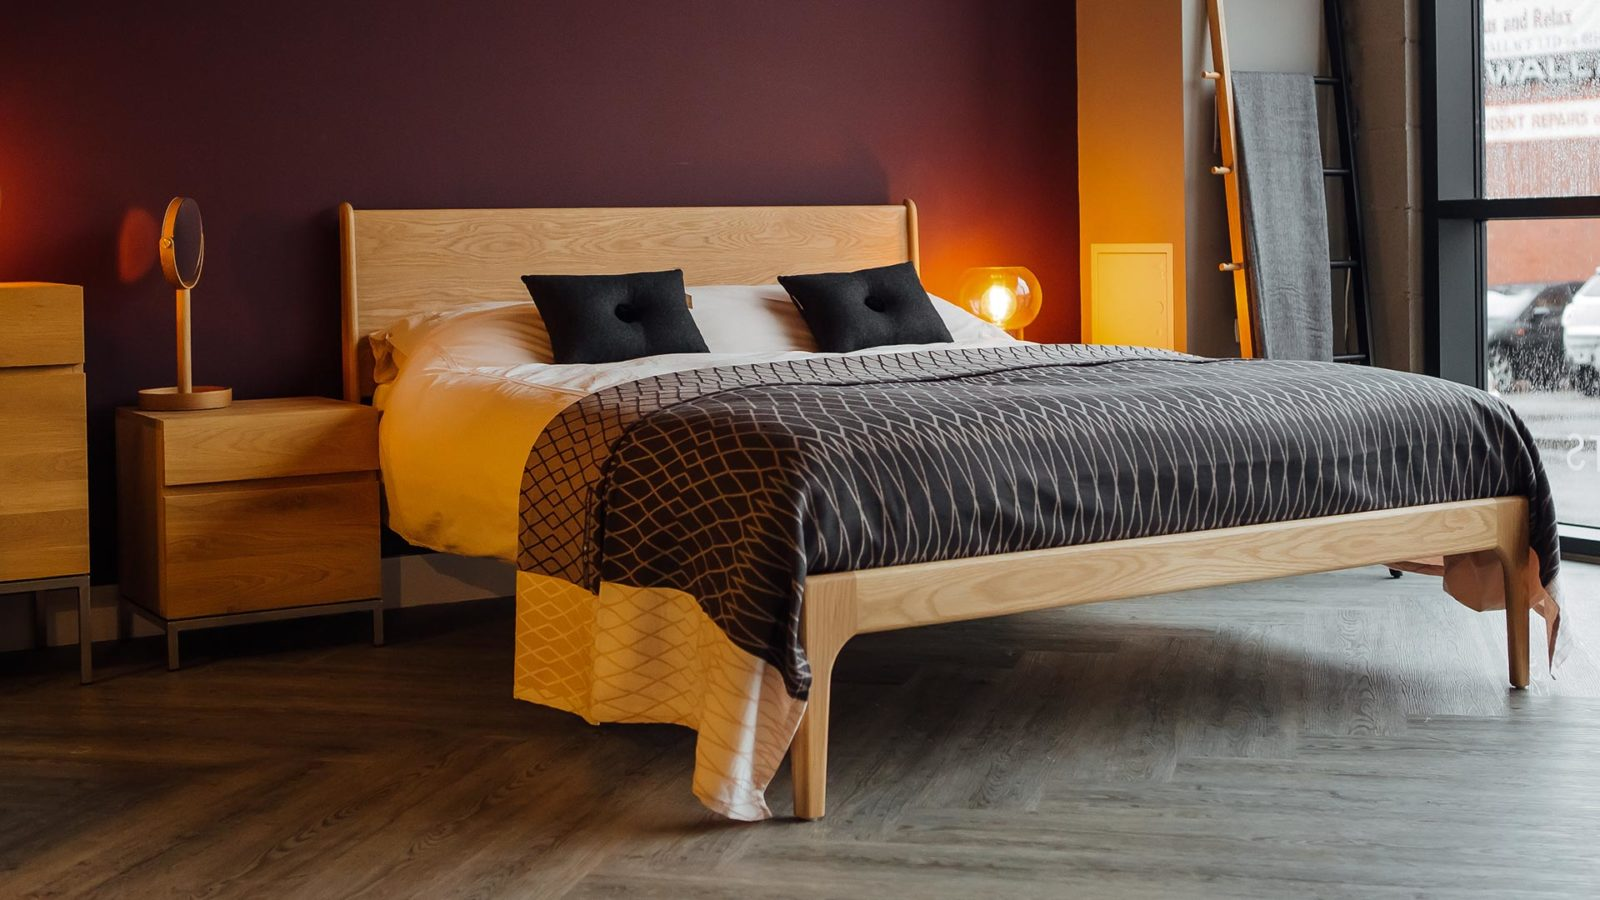 Solid Oak Camden Bed designed and hand-made by Natural Bed Company